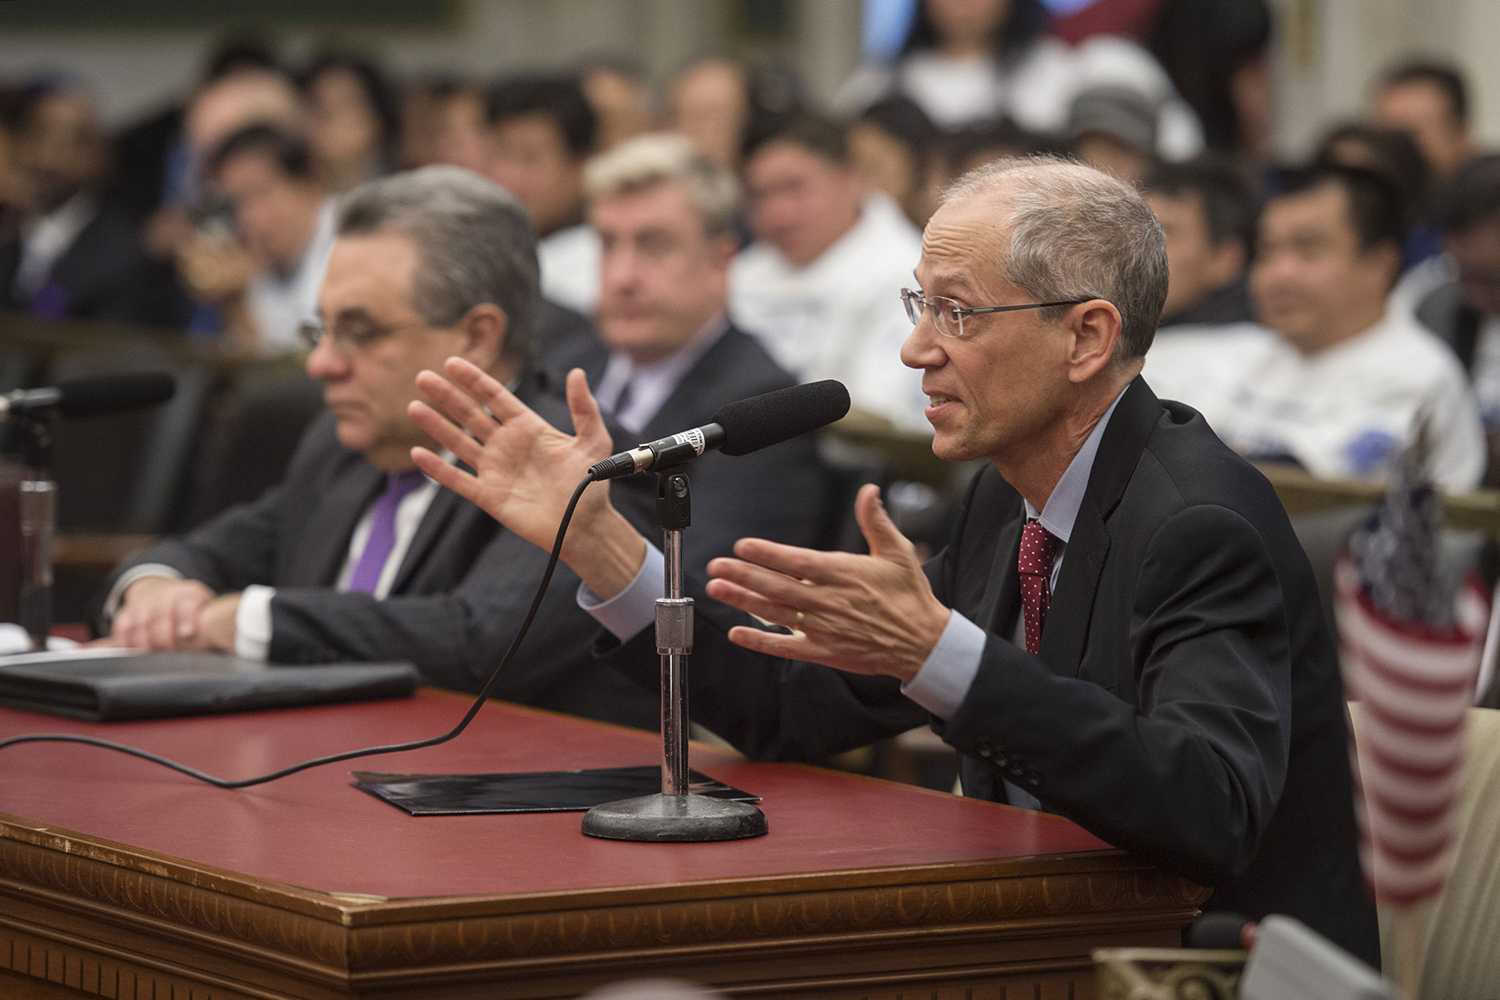 Thomas Farley, MD, health commissioner for the city of Philadelphia, responds to a question from a member of City Council's Committee on Public Health and Human Services during a hearing on a bill that would prohibit beer deli owners from having protective safety glass separating them from their customers during a hearing Dec. 4, 2017. Farley and Dave Perri (left), head of Philadelphia's Department of Licenses and Inspections, support the bill. (Clem Murray/Philadelphia Inquirer/TNS)